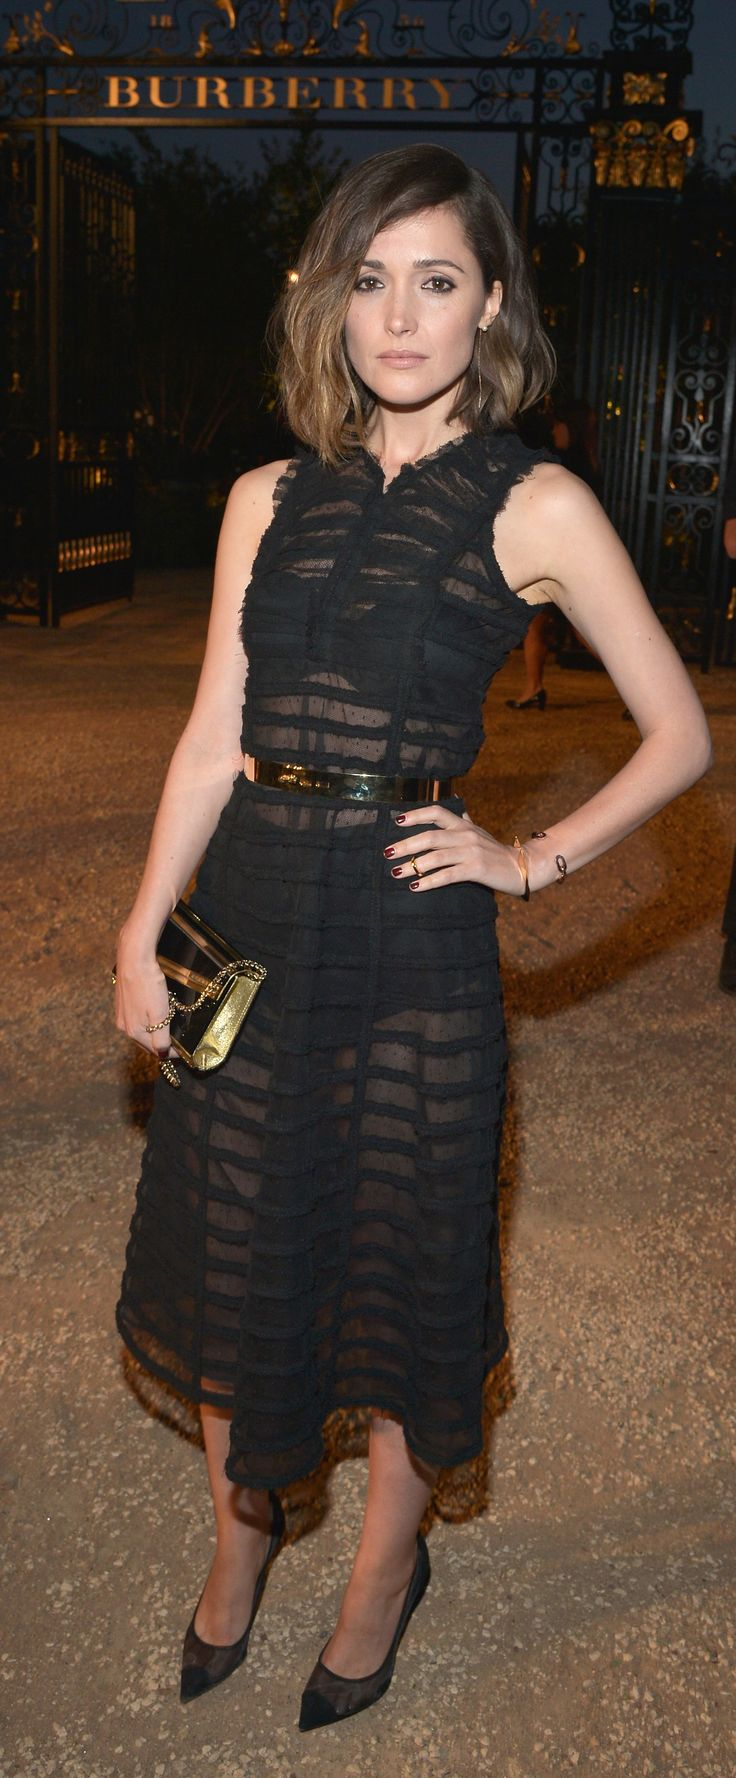 Australian actress Rose Byrne wearing sheer black Burberry dress to attend 'London in Los Angeles' in Hollywood